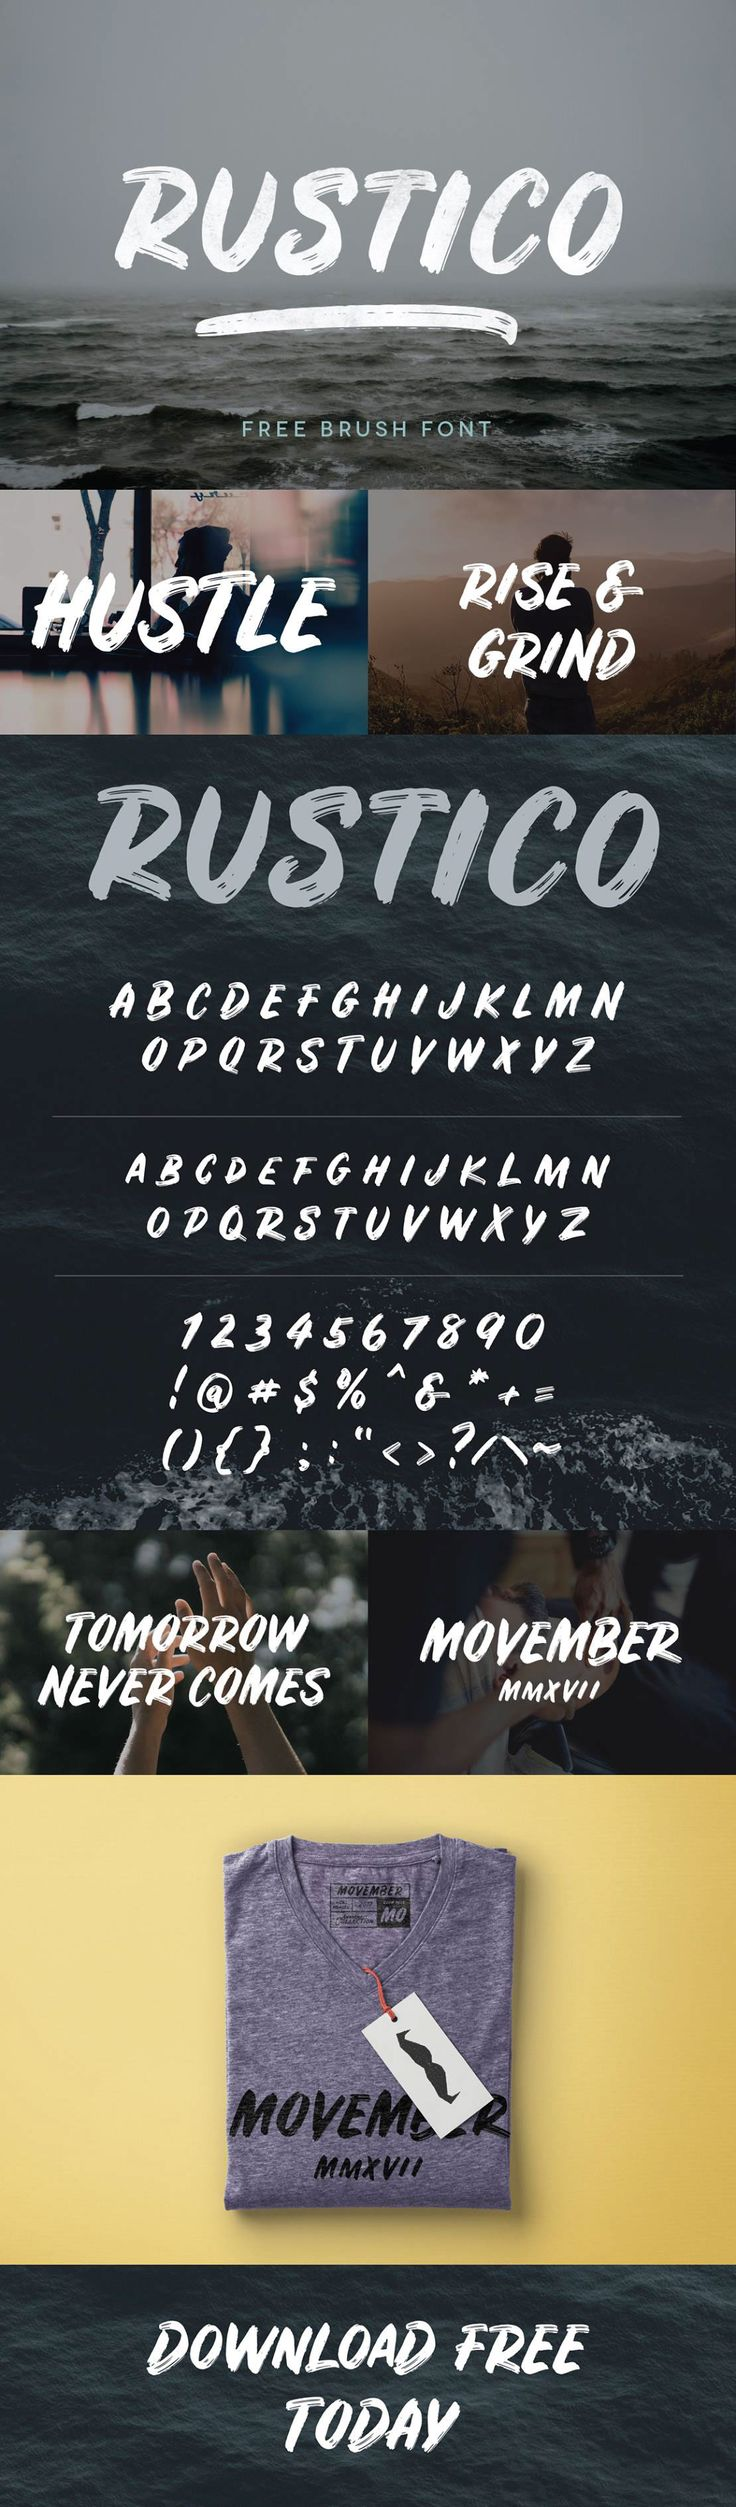 RUSTICO - FREE BOLD BRUSH FONT | Free for Personal & Commercial use